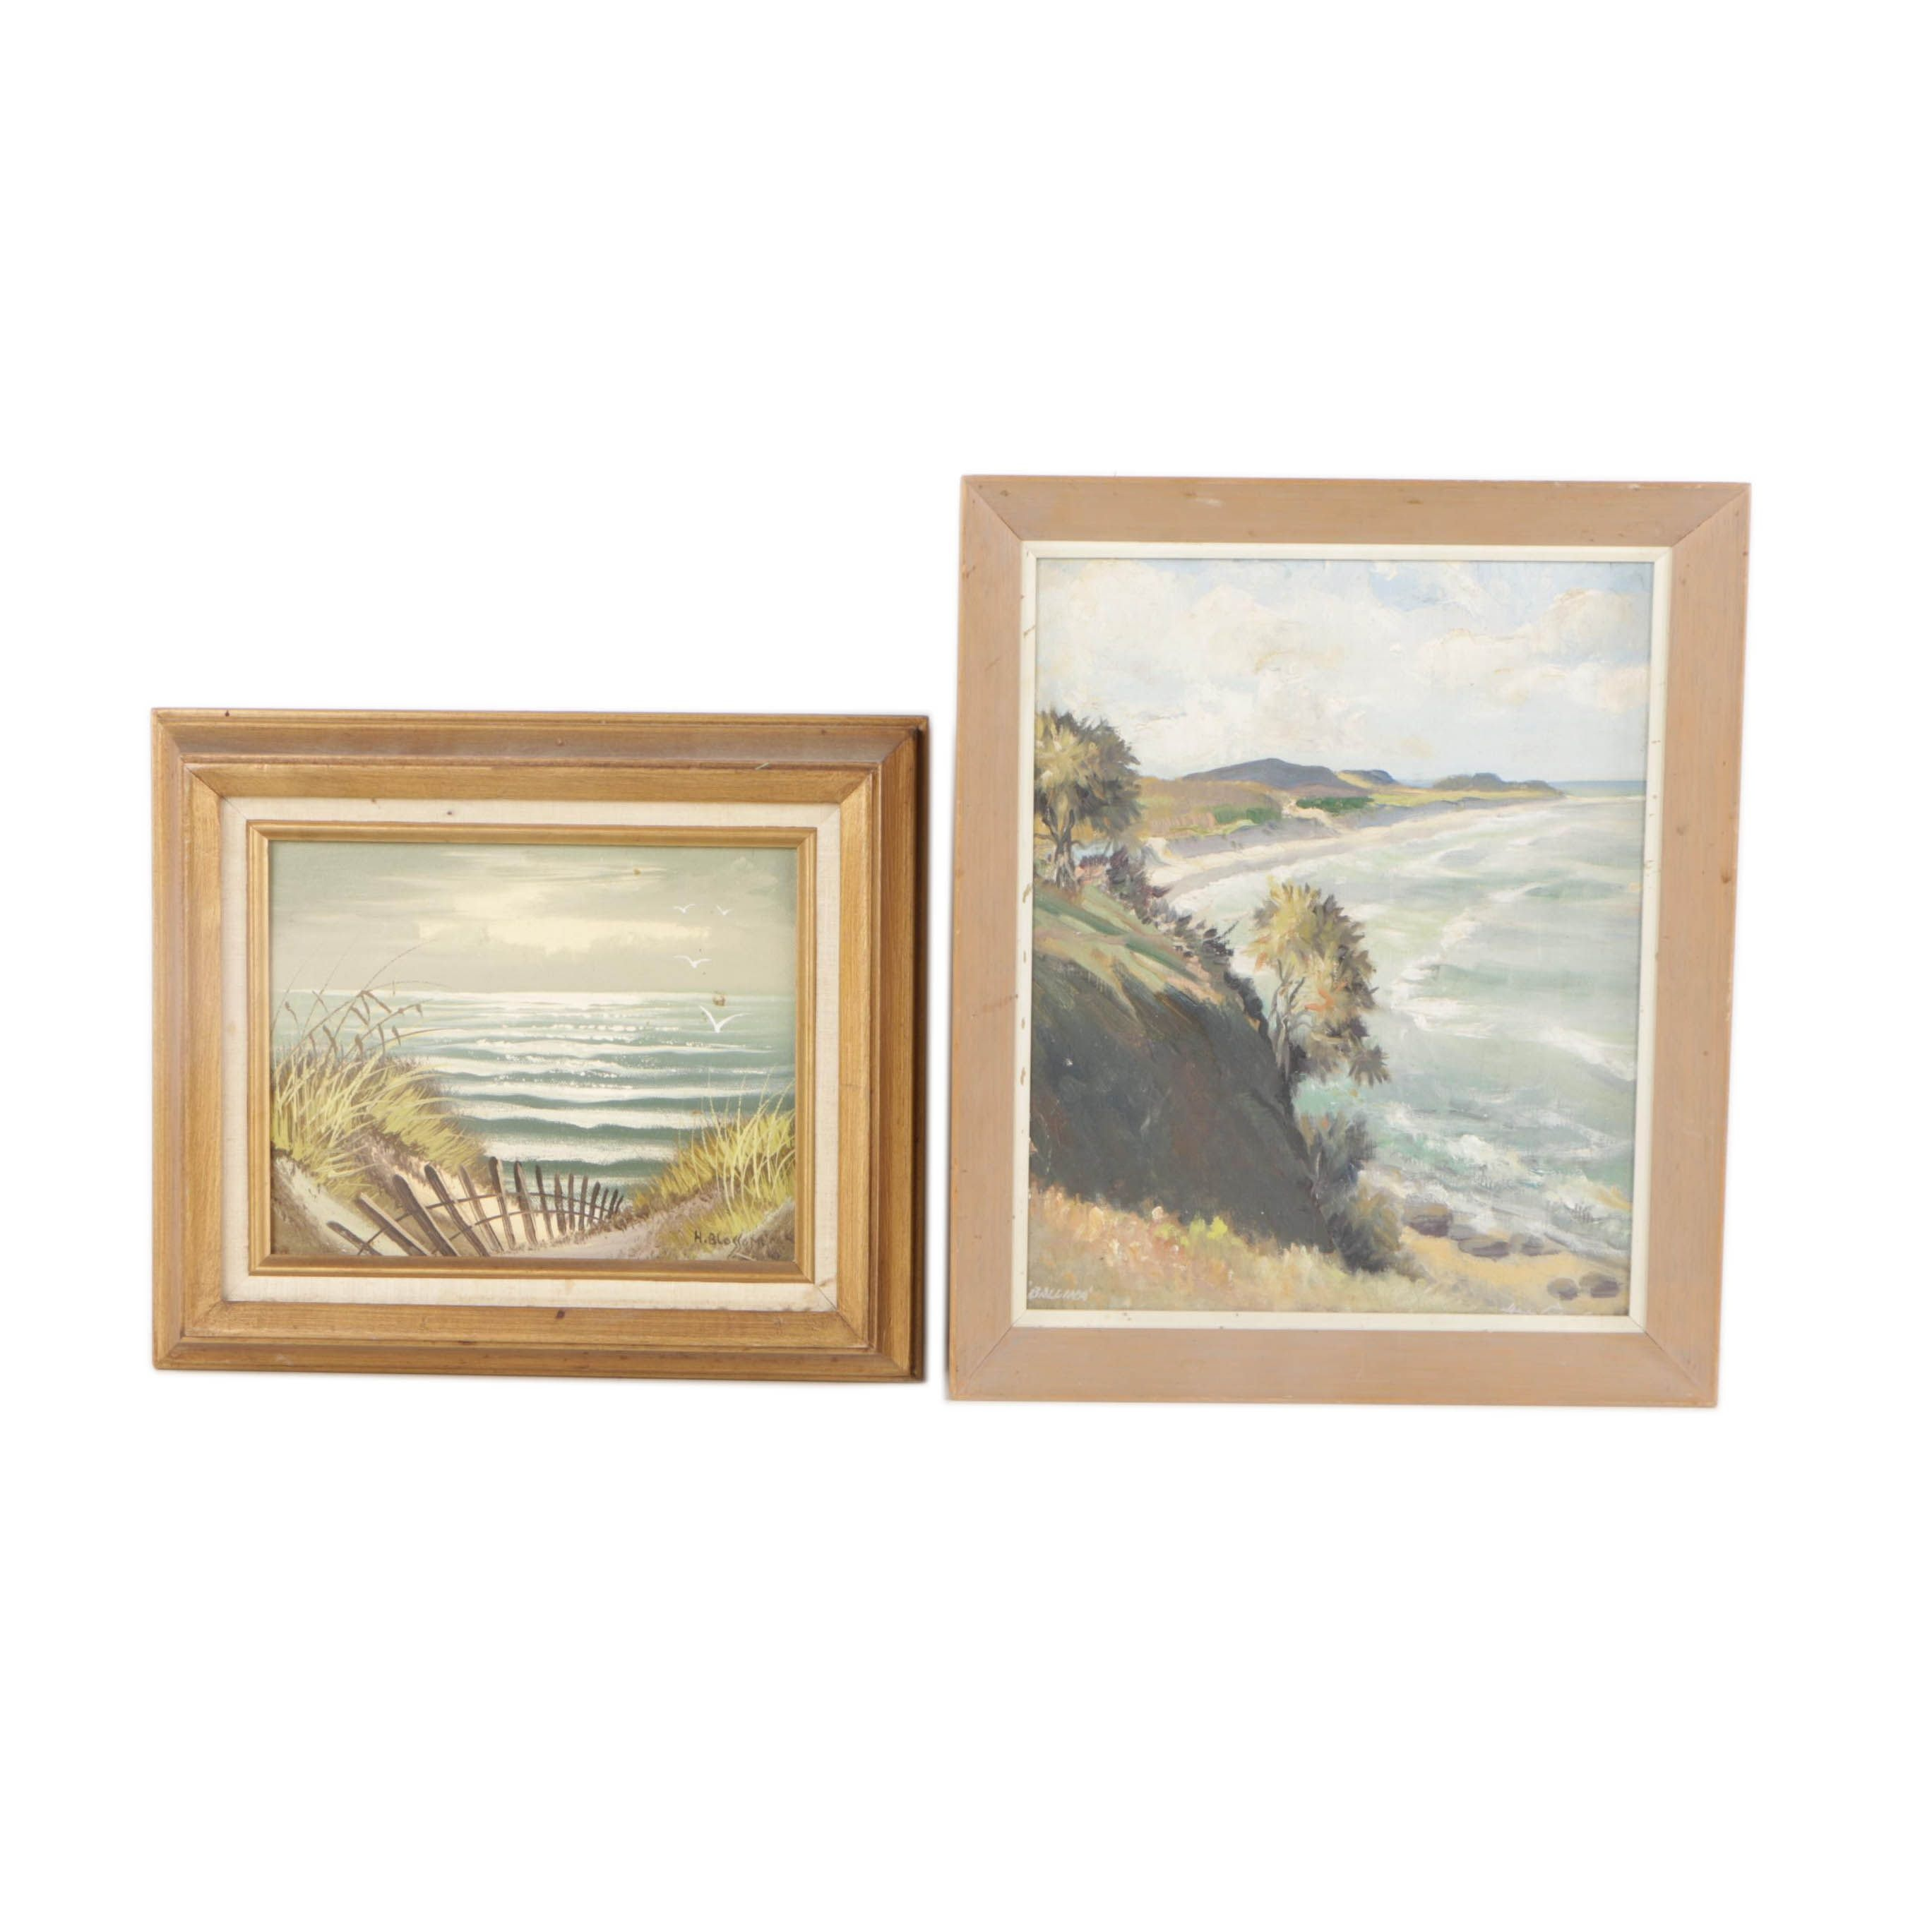 H. Blossom and Ballina Mid-20th Century Oil Paintings